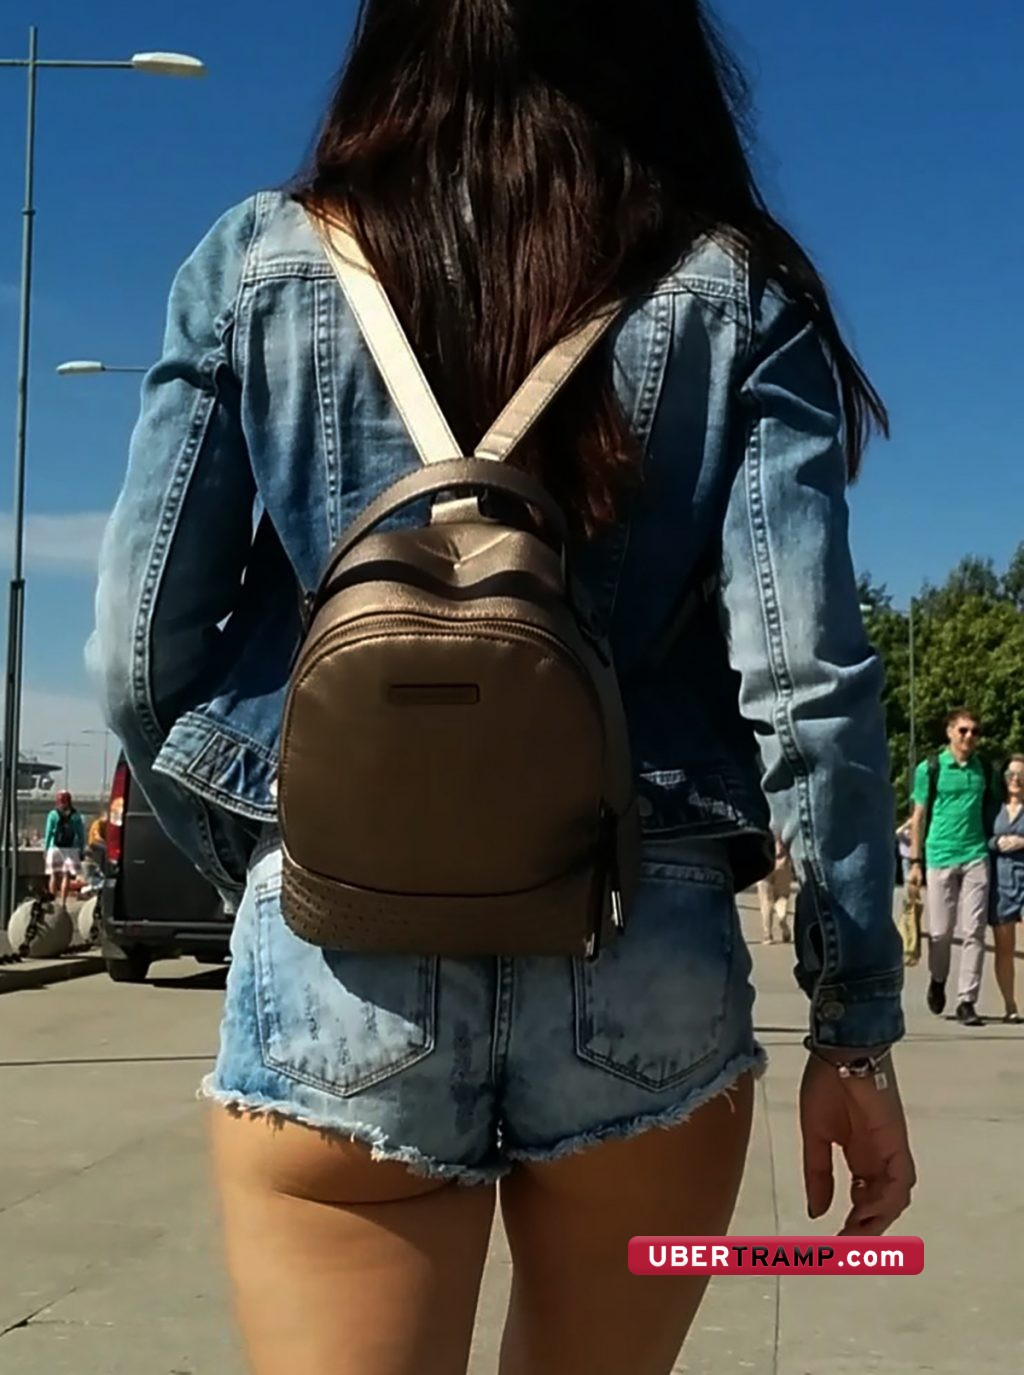 Sexy girl in shorts walking through the street